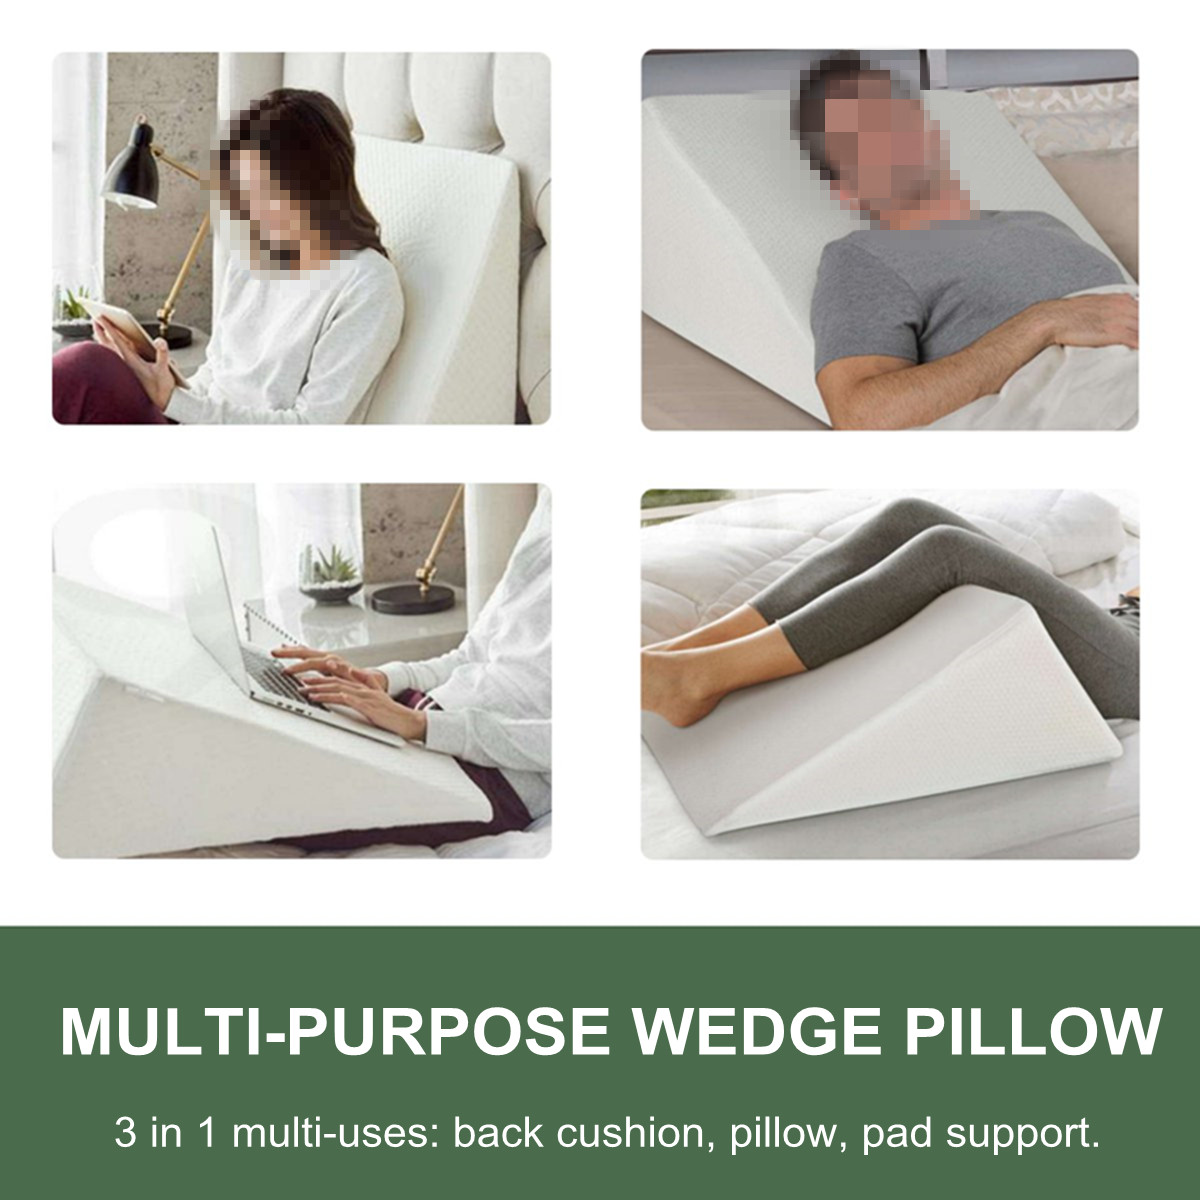 Angled Pillow For Acid Reflux Us 8 14 49 Off Orthopedic Acid Reflux Bed Wedge Pillow Leather Sponge Back Leg Elevation Cushion Pad Triangle Pillow Cover Brown Bedding In Body